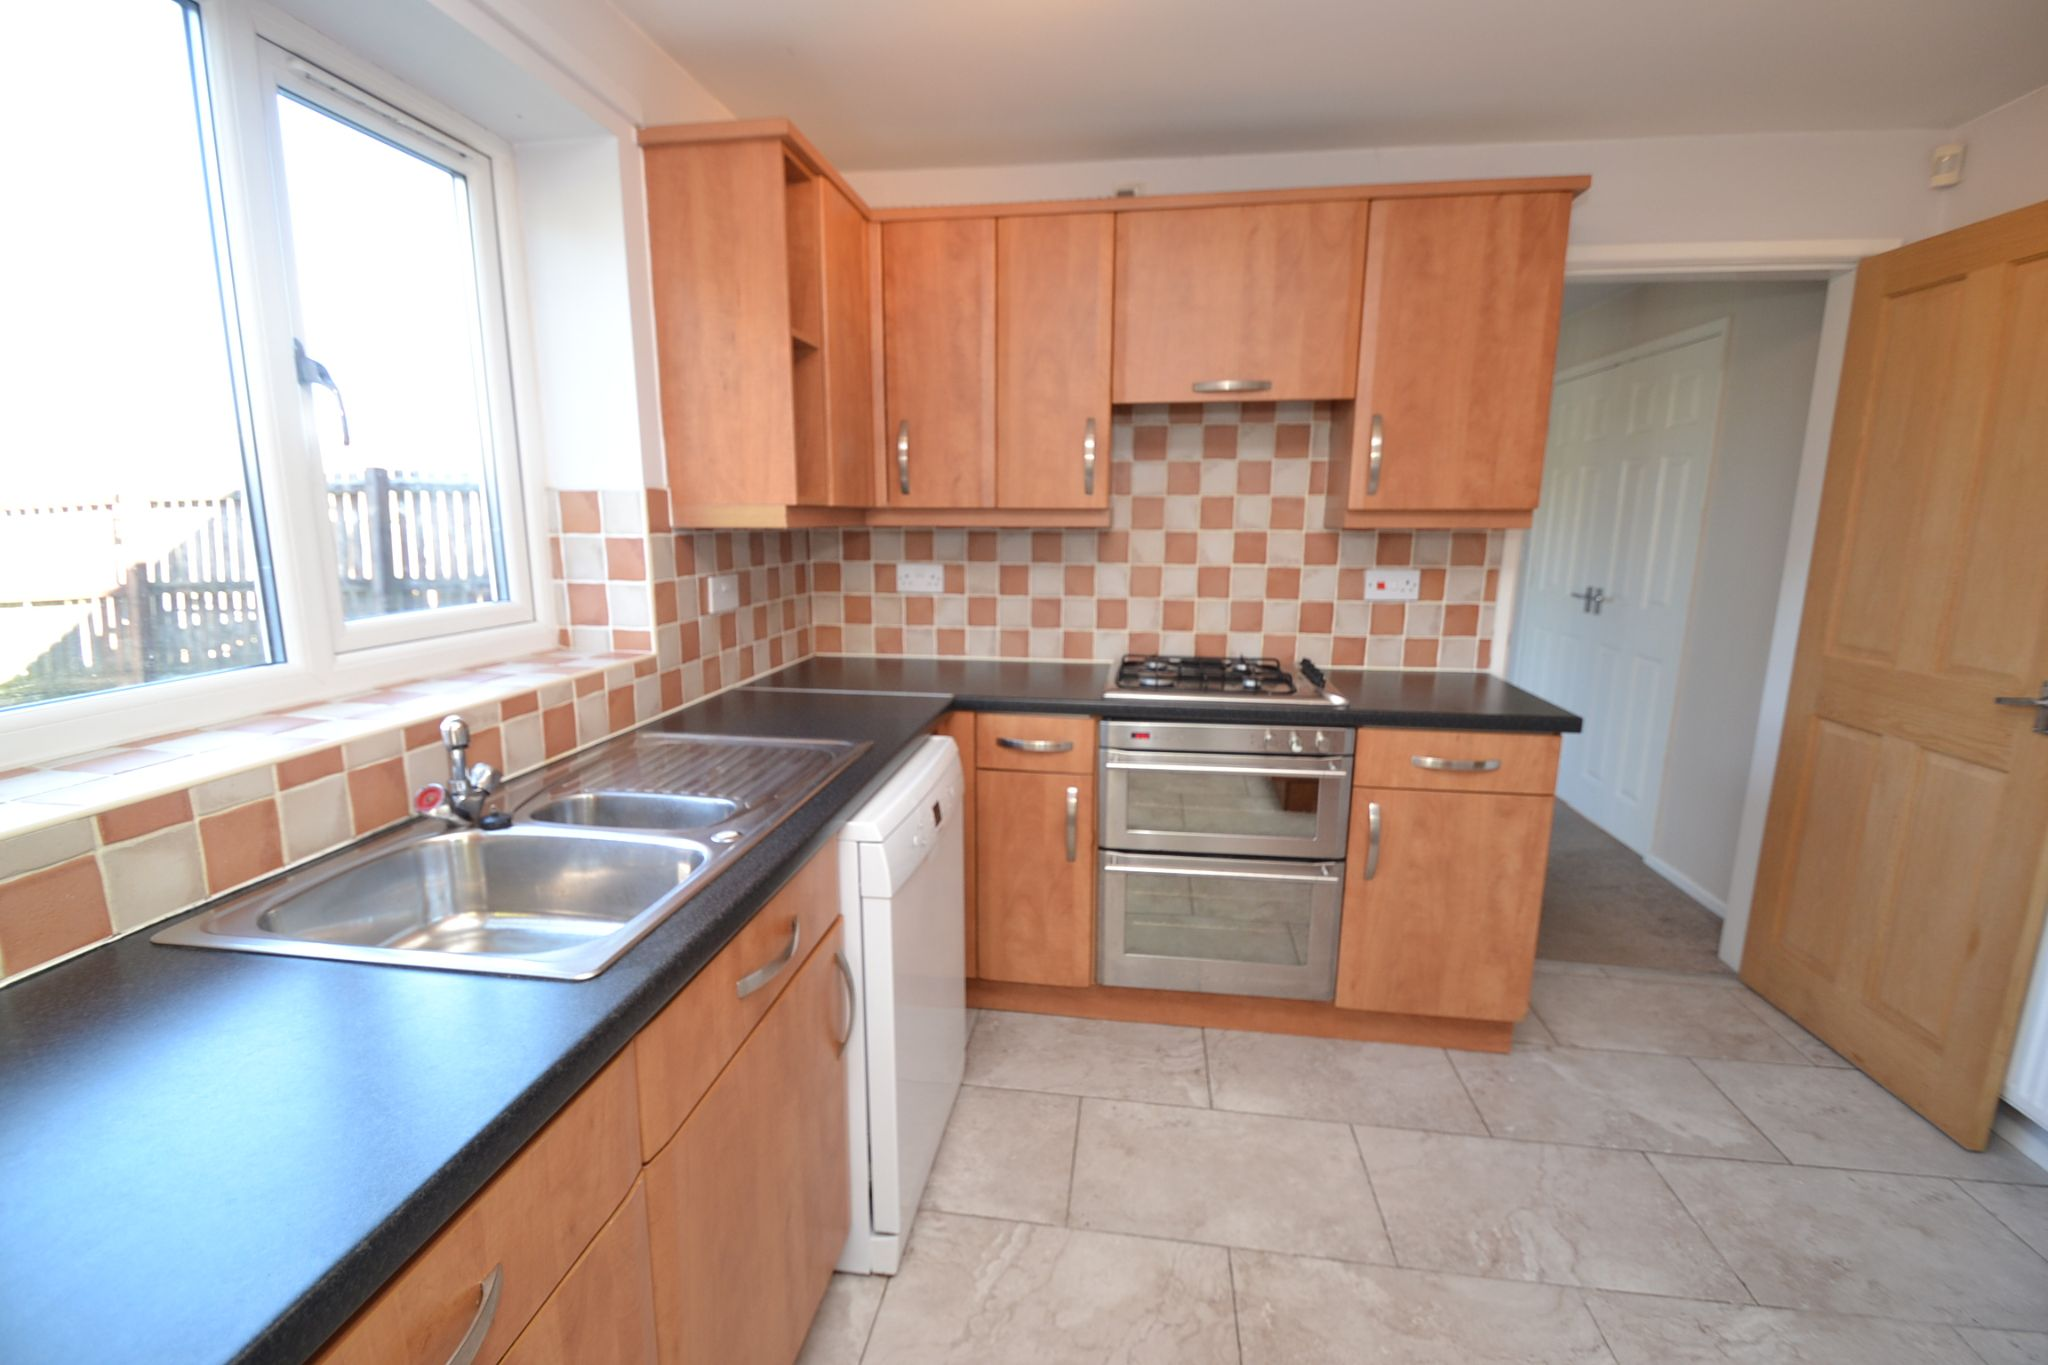 4 Bedroom Semi-detached House For Sale - Photograph 7